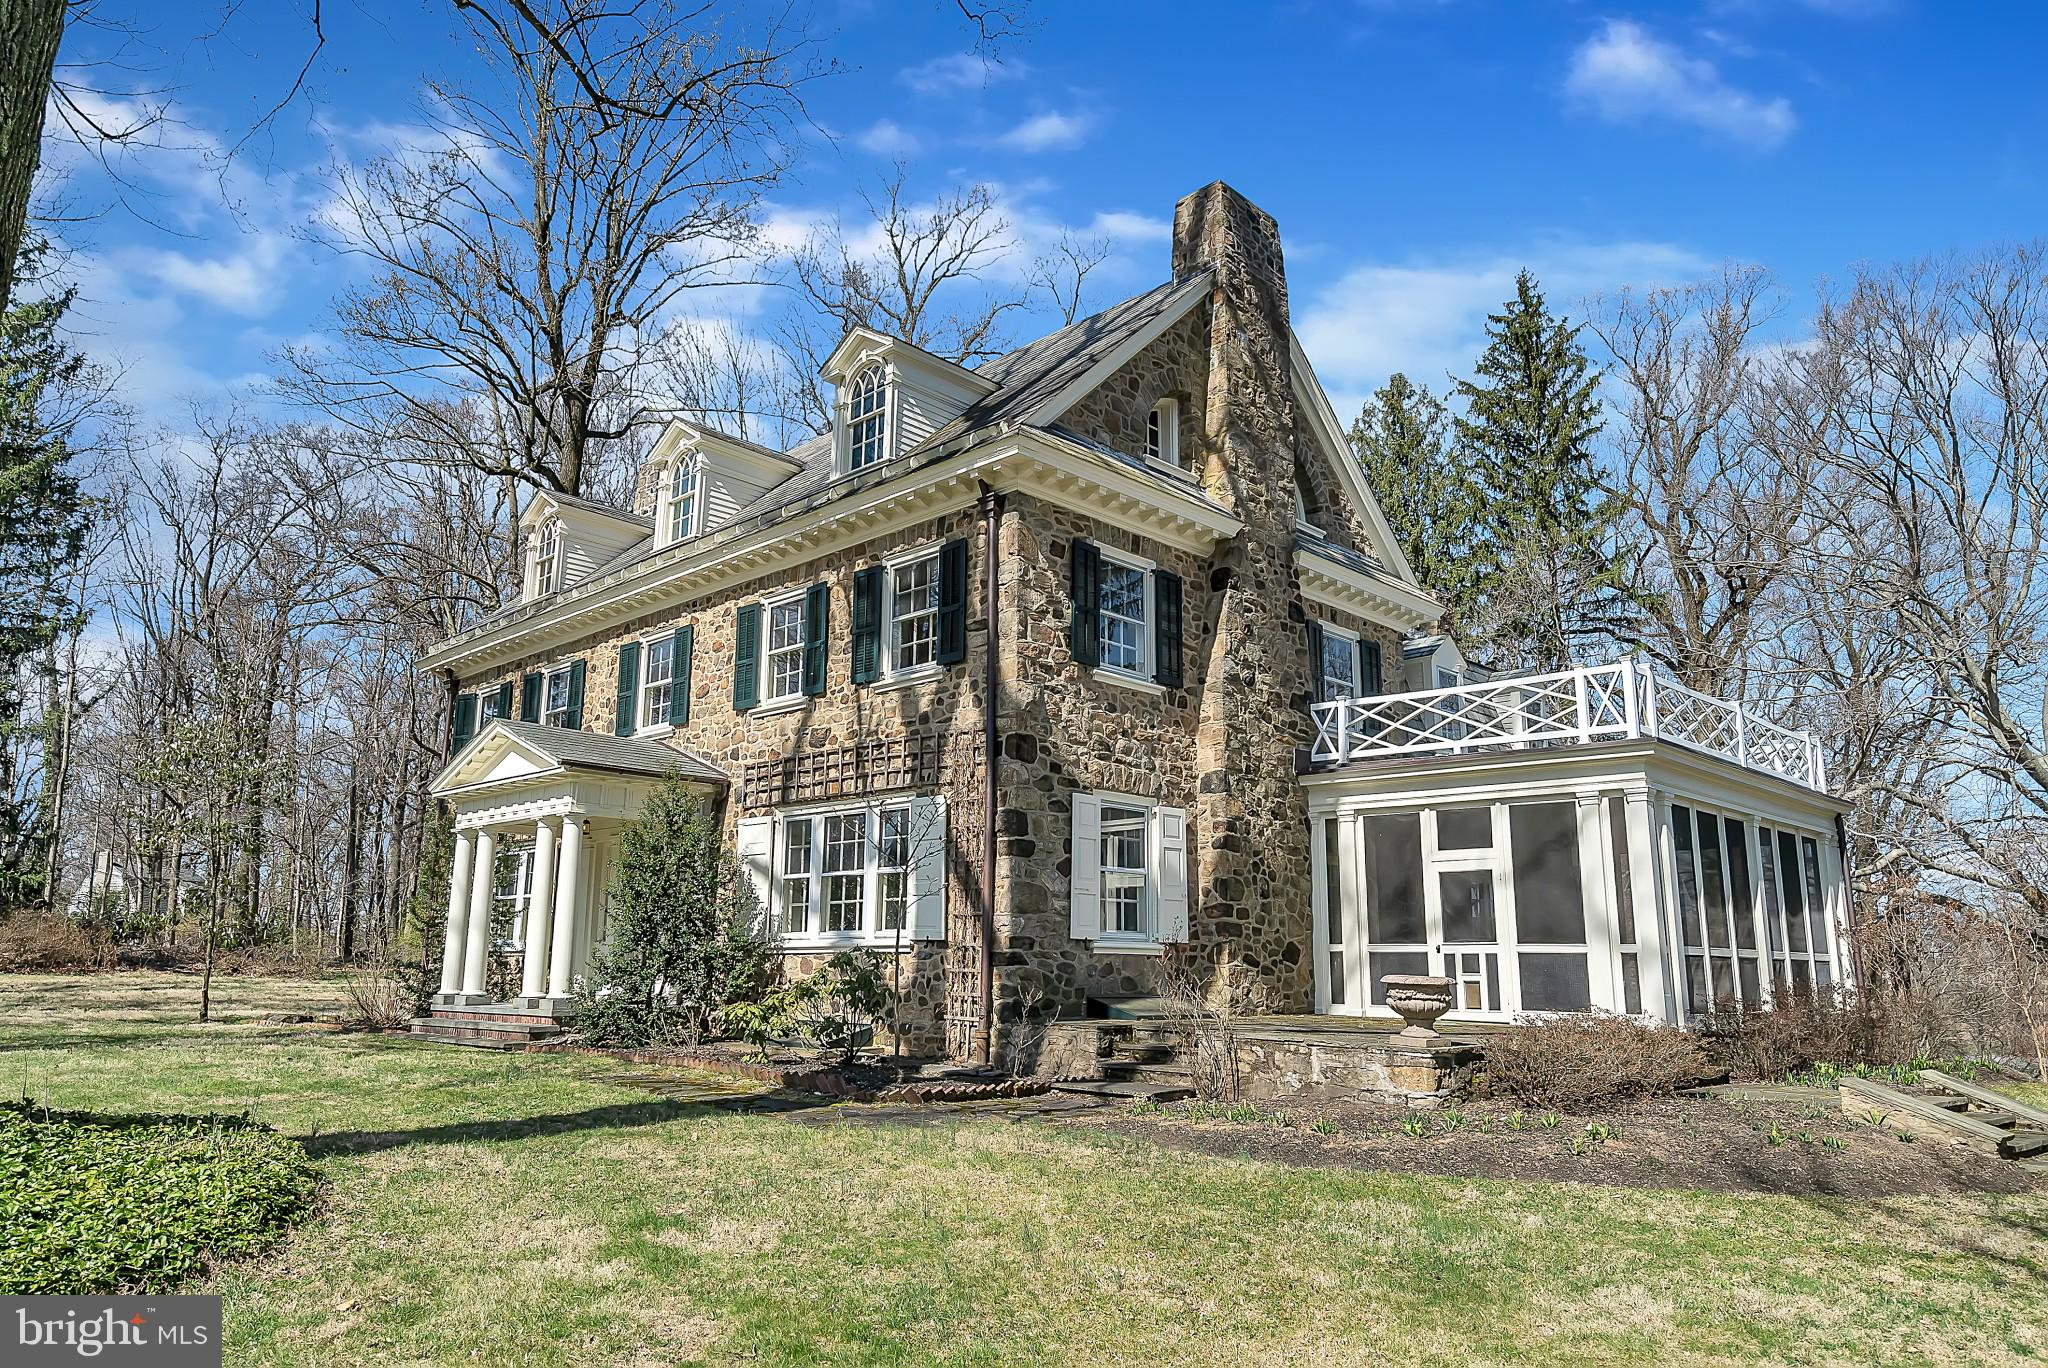 1708 OLD WELSH ROAD, HUNTINGDON VALLEY, PA 19006